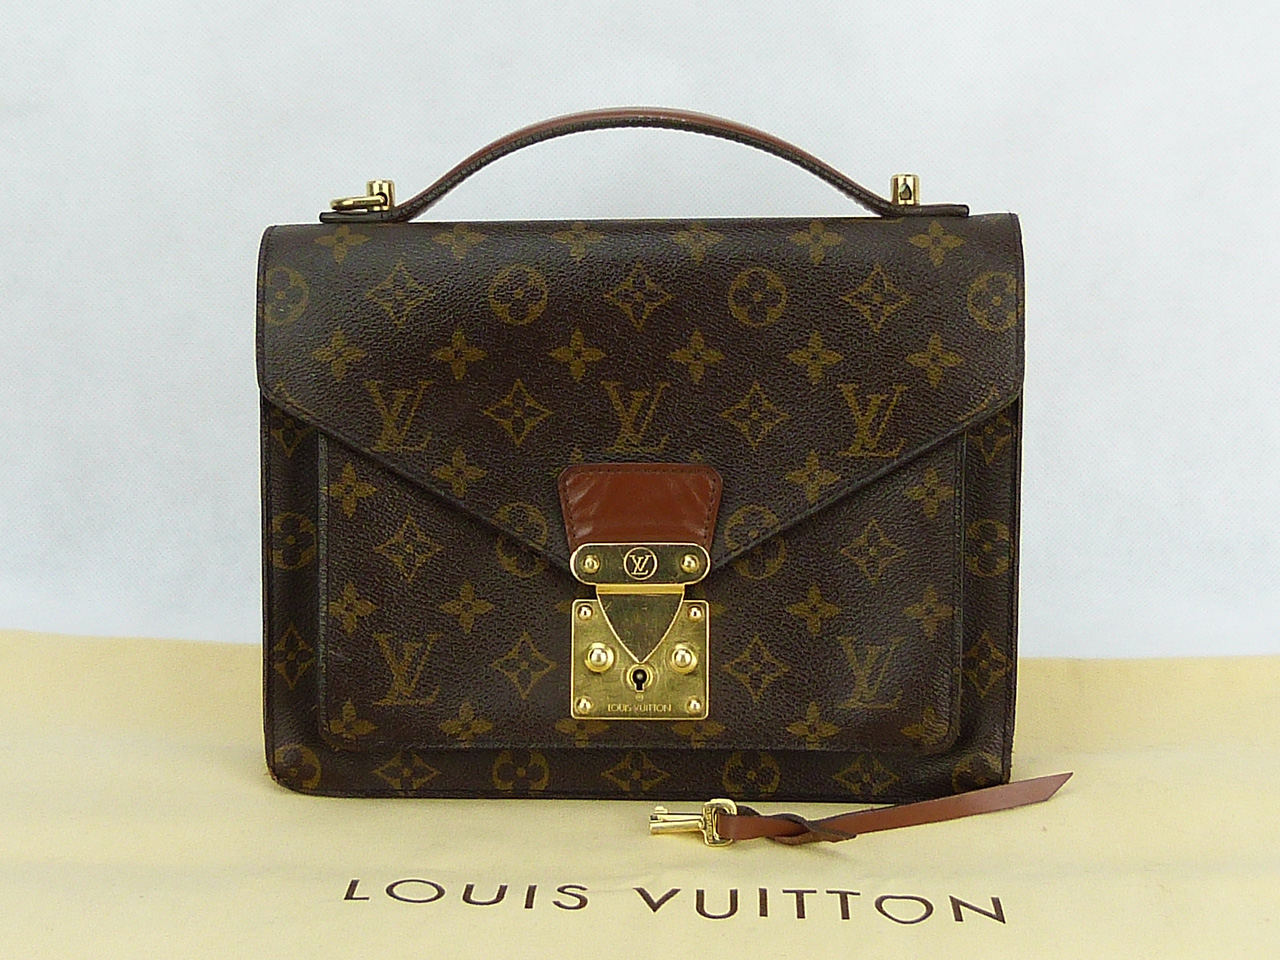 Sac Louis Vuitton Concorde Authentique d'occasion Monogram Vintage